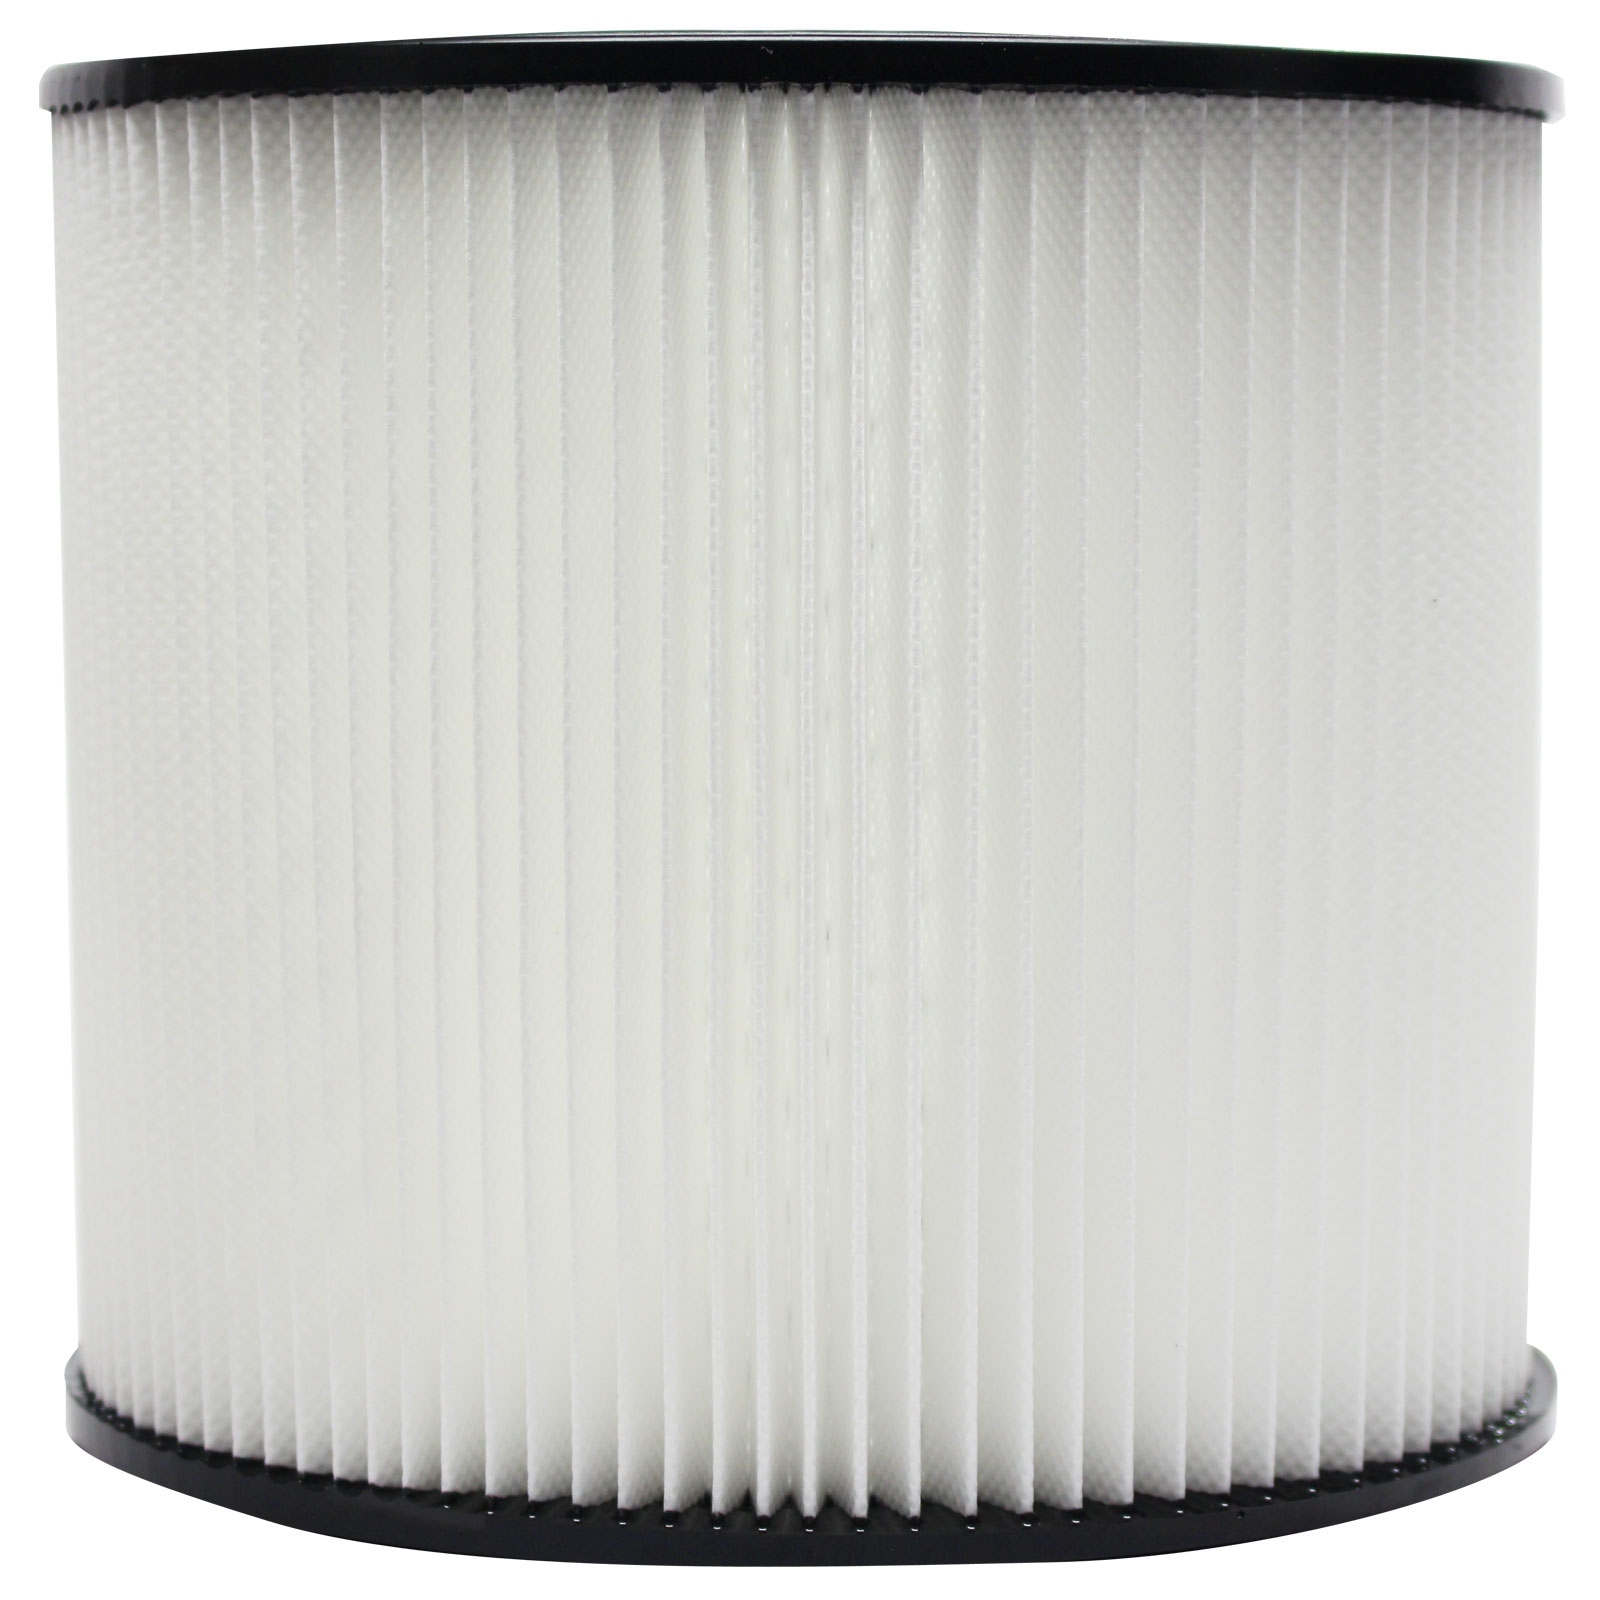 Replacement Shop-Vac BullDog 587-08-00 Vacuum Cartridge Filter - Compatible Shop-Vac 90304 Cartridge Filter - image 3 of 4